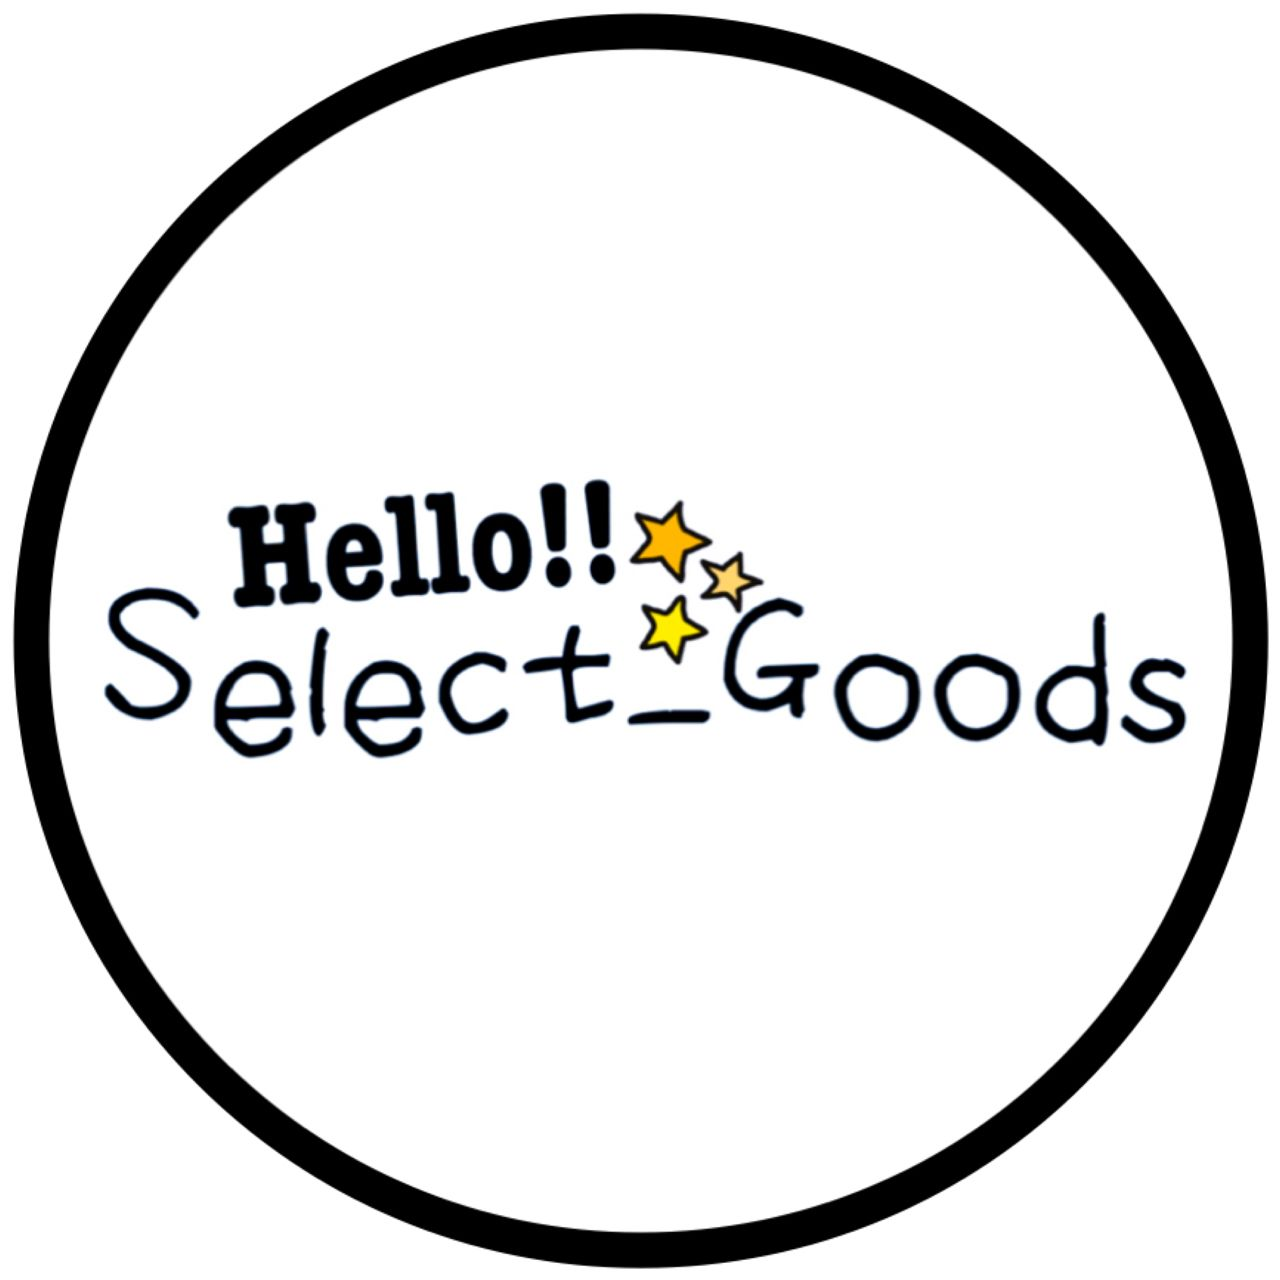 select_goods